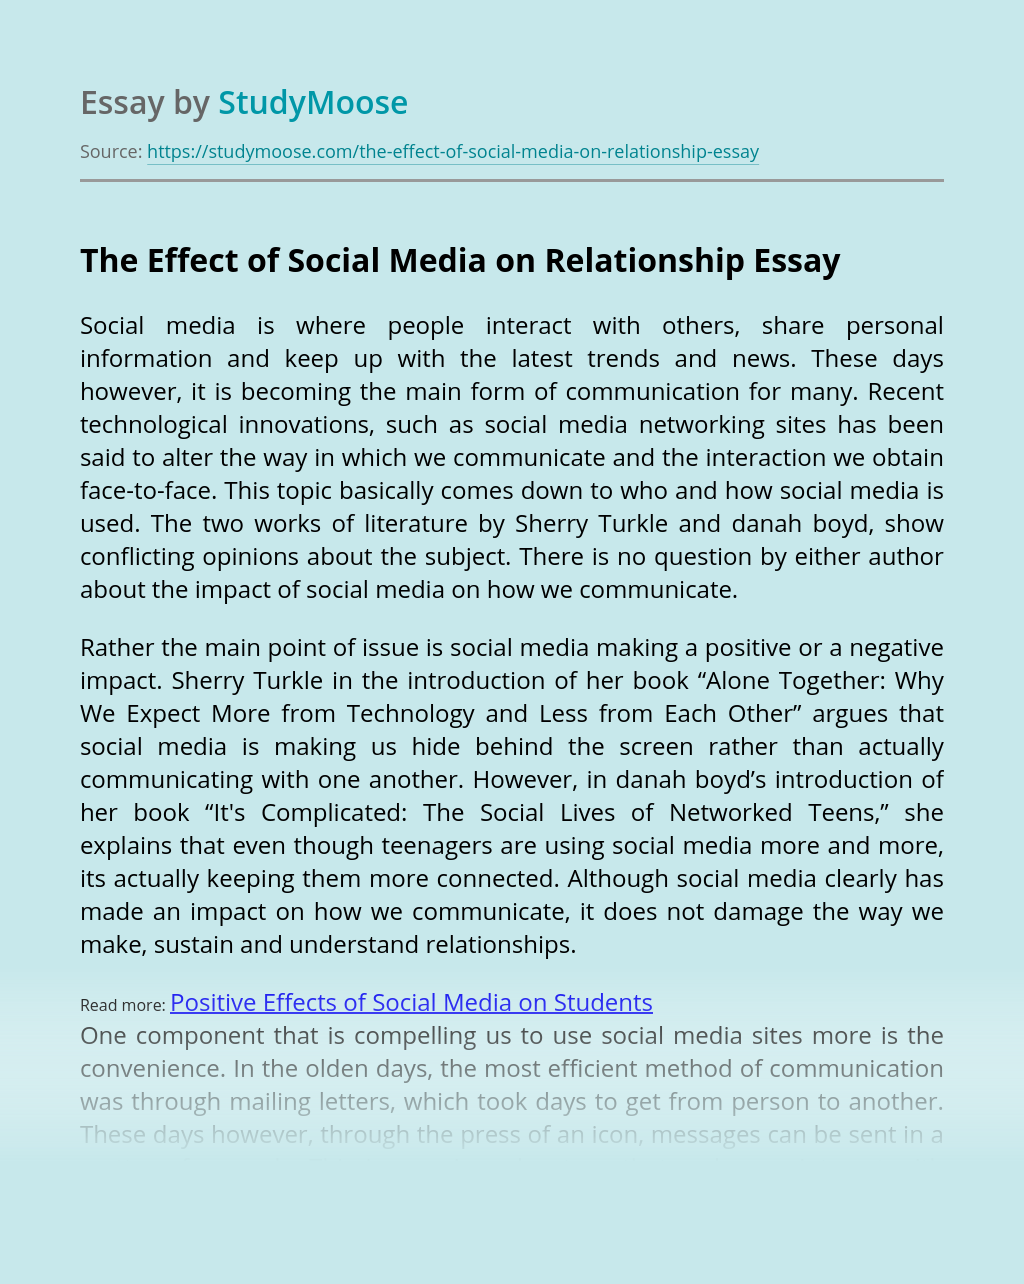 The Effect of Social Media on Relationship